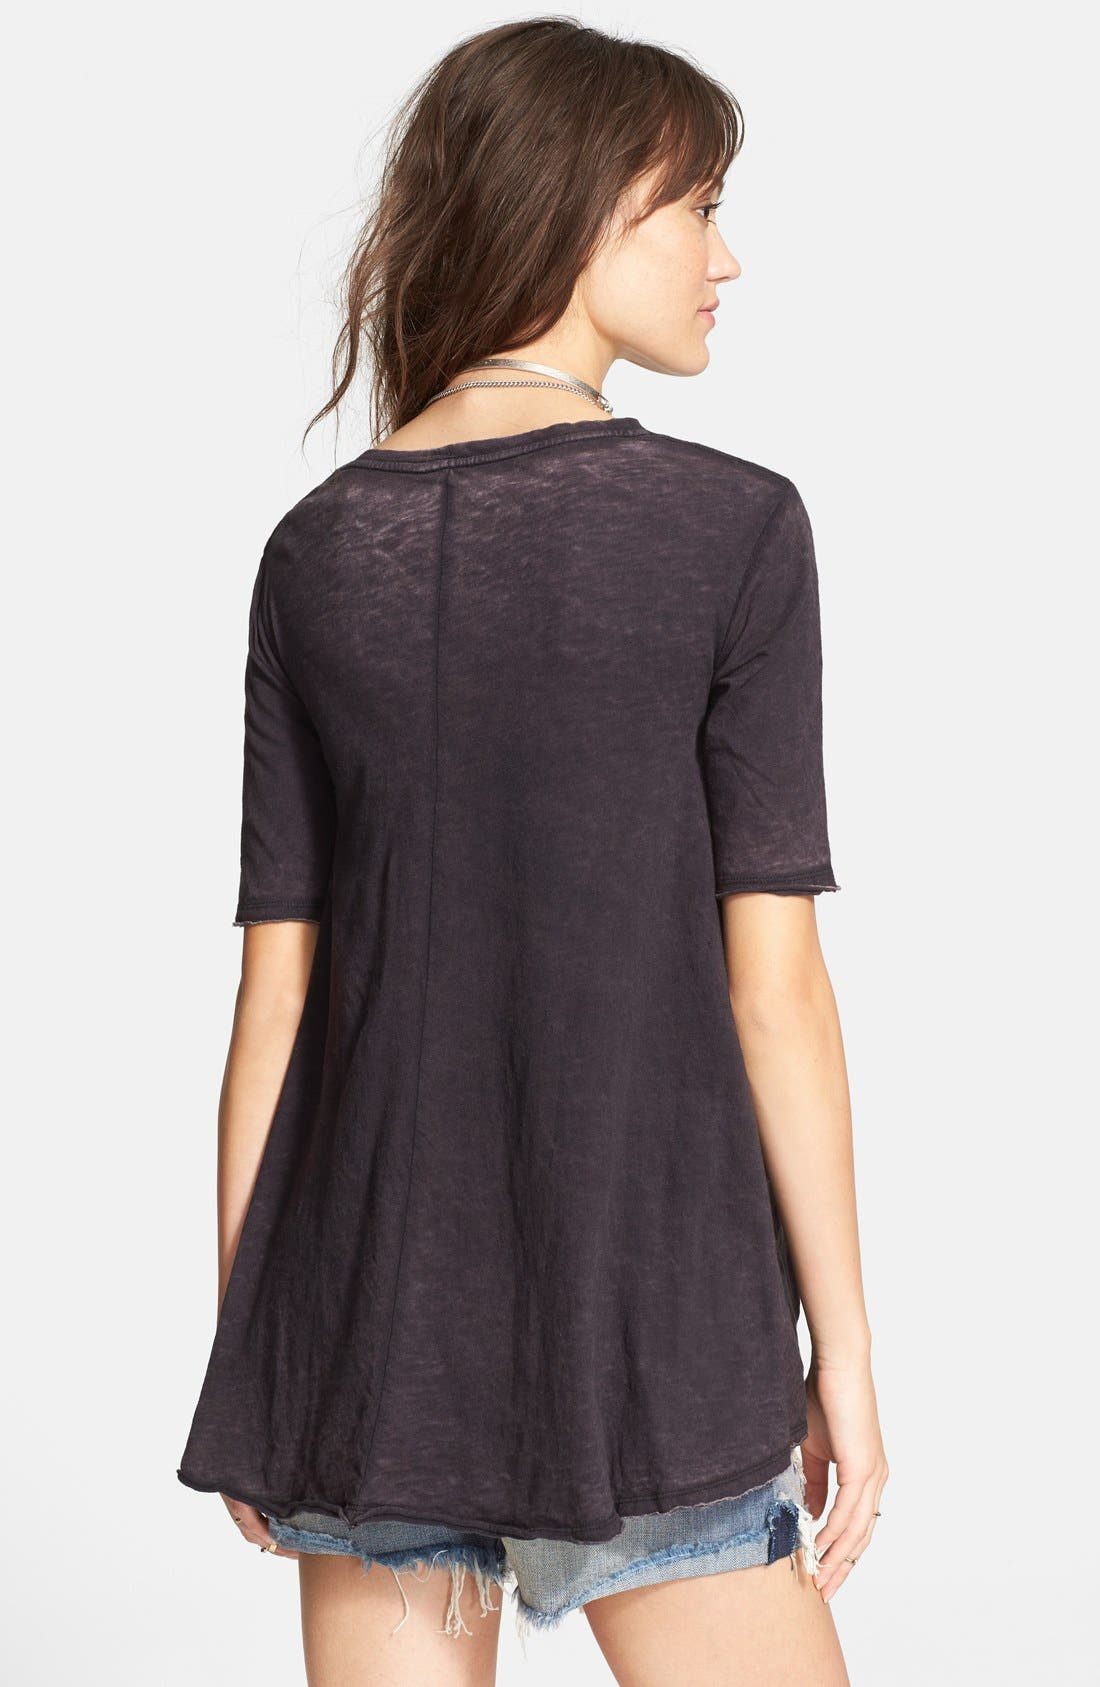 FREE PEOPLE, 'Melrose' Peplum Hem Tee, Alternate thumbnail 3, color, 001